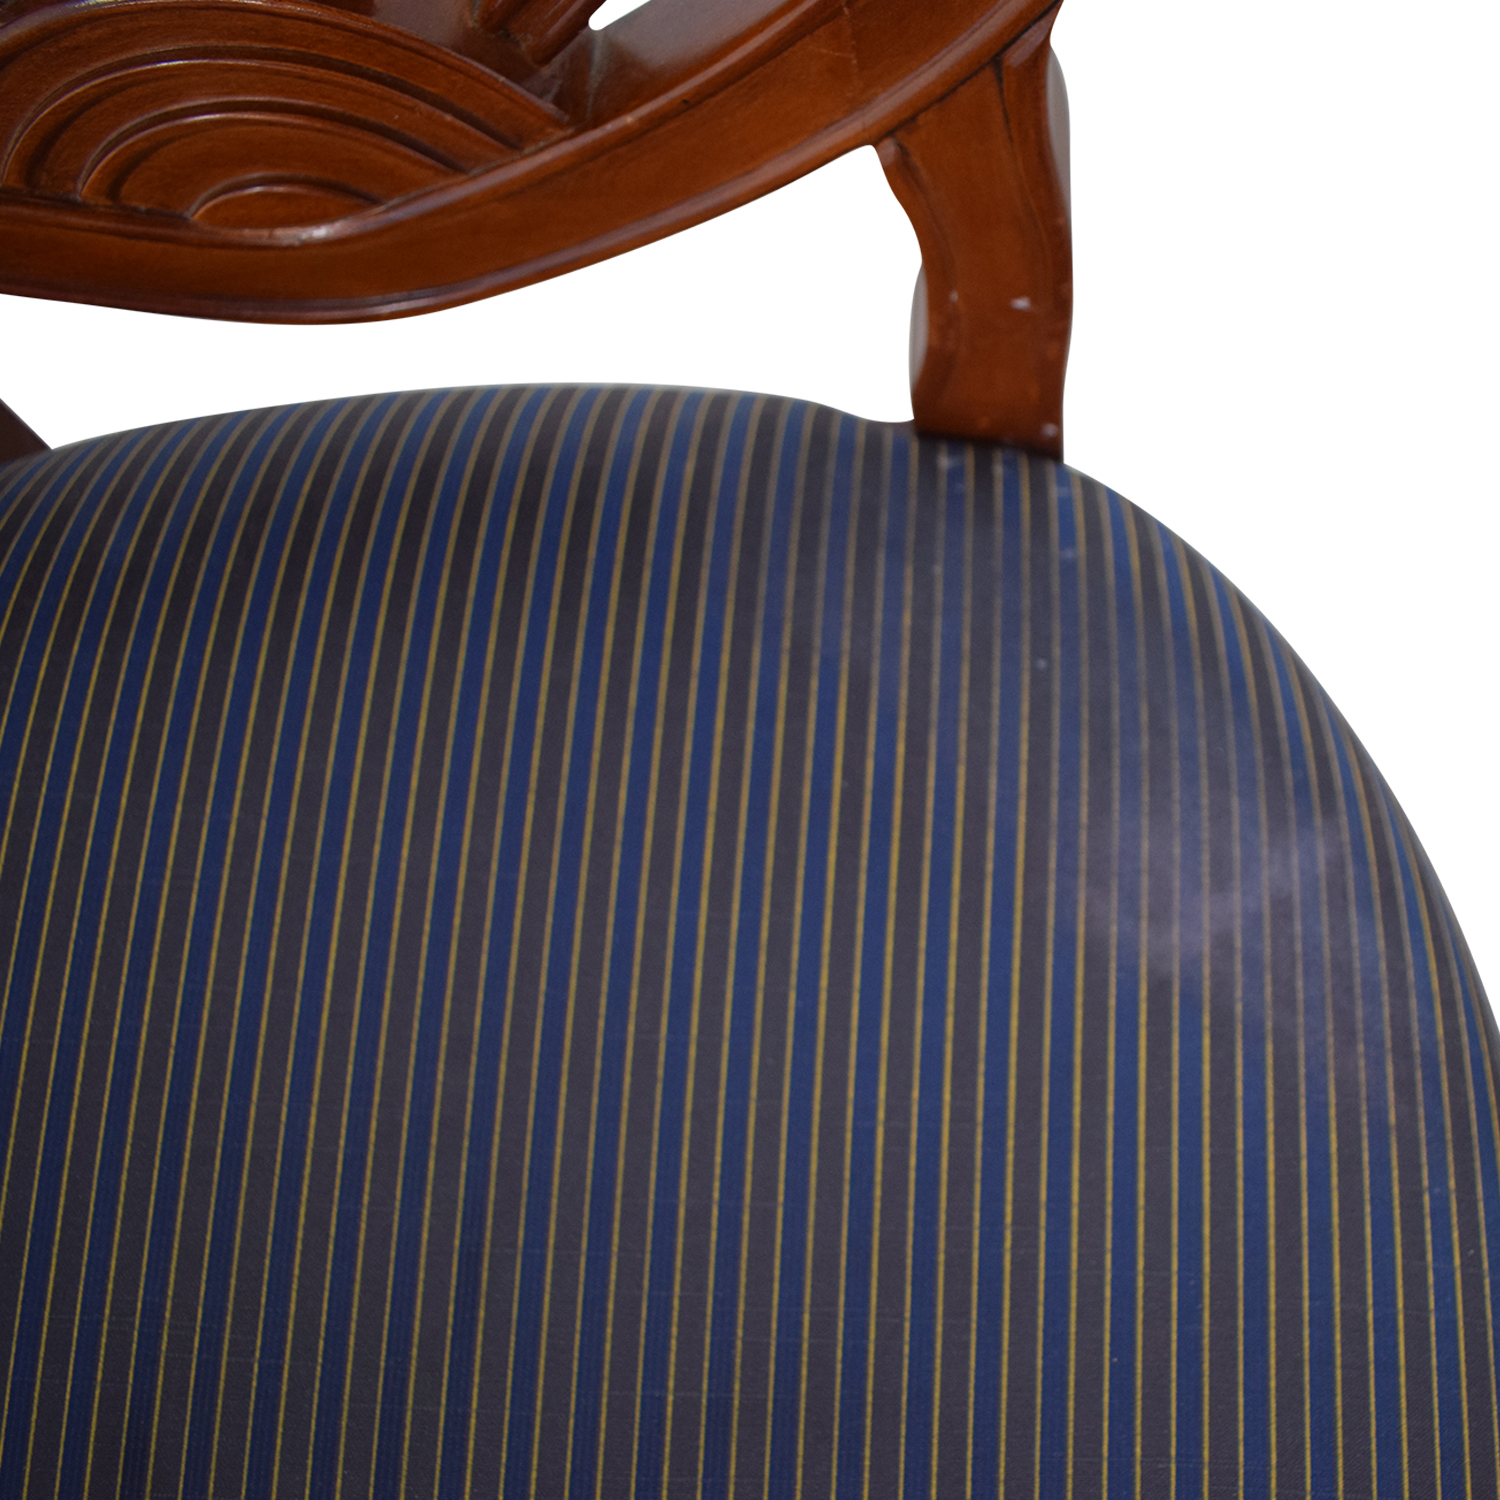 Blue Striped Upholstered Cherry Wood Accent Chairs cherry wood and stripped cushion